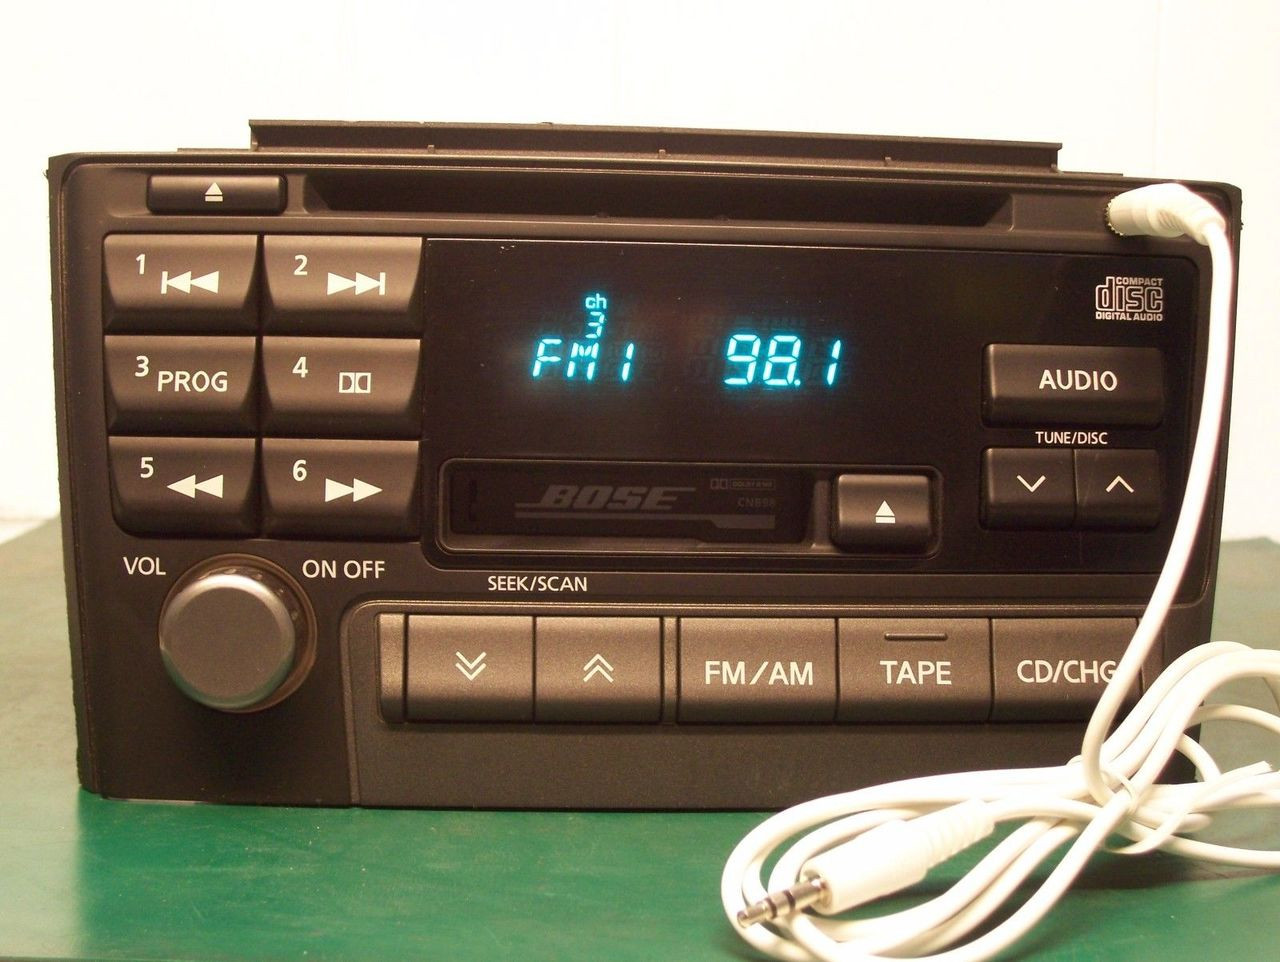 medium resolution of details about 2000 2003 nissan maxima bose radio cd player added aux input cnb98